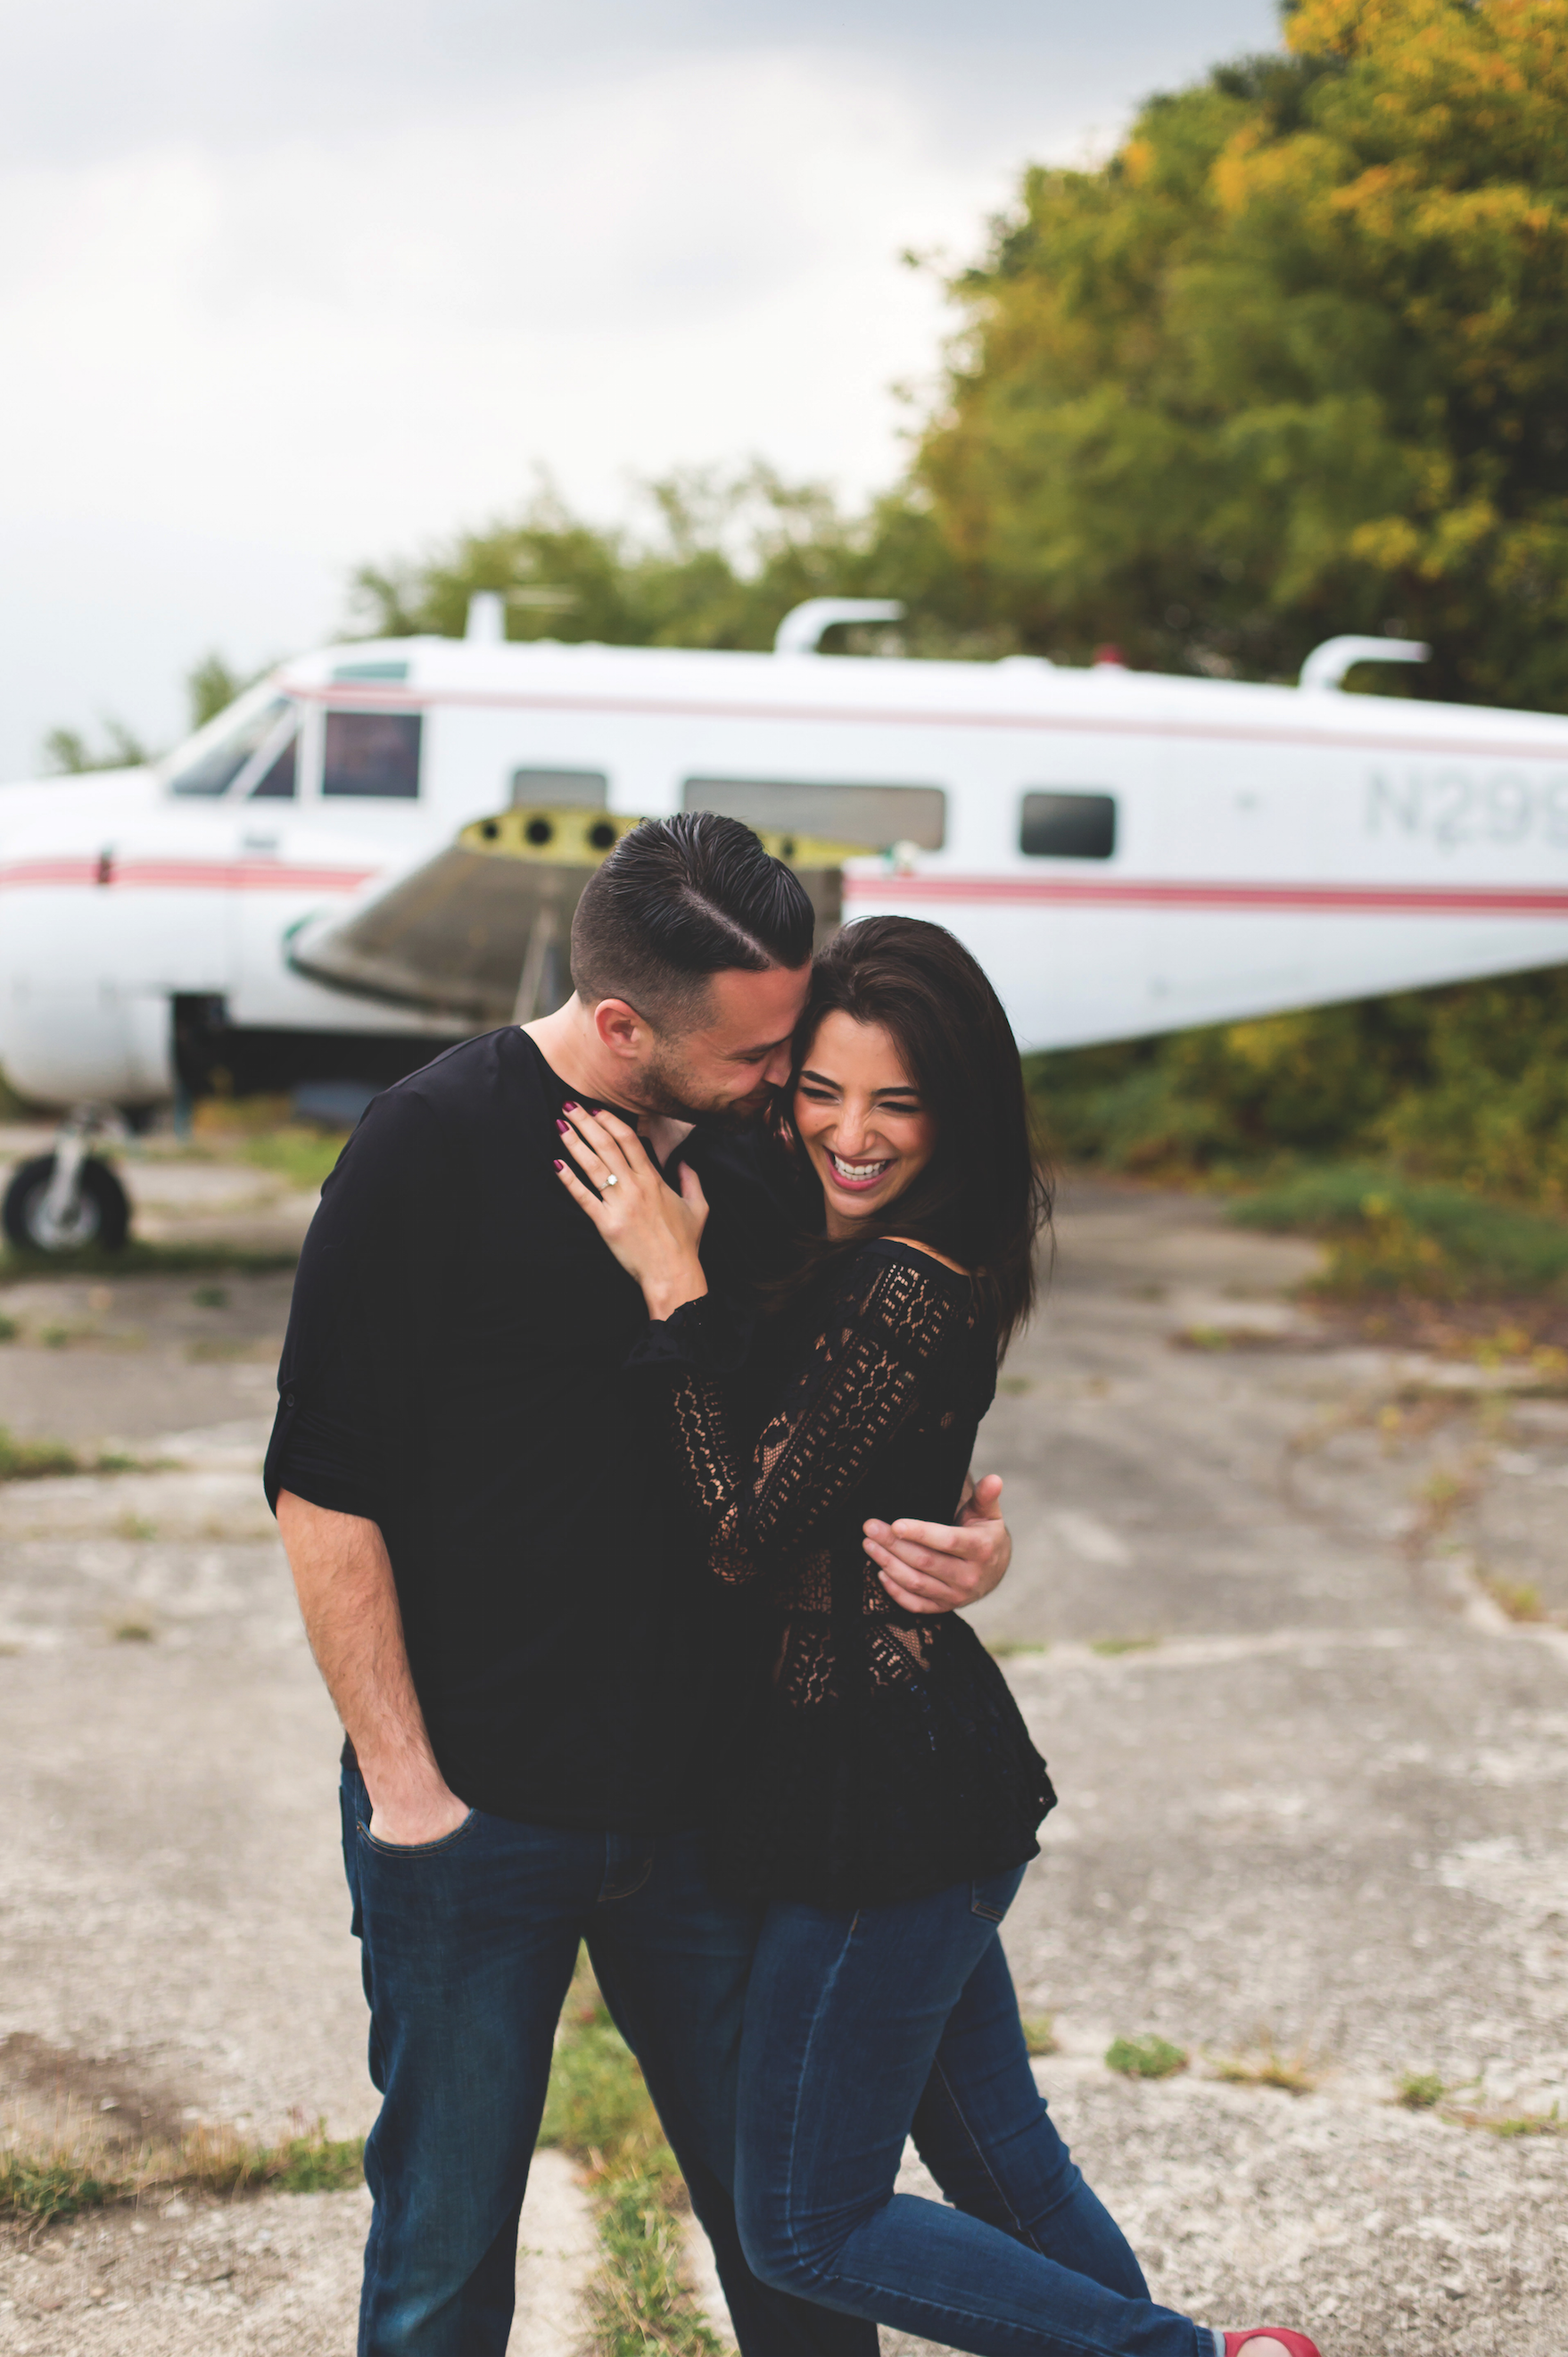 Engagement-Session-Hamilton-Burlington-Oakville-Toronto-Niagara-Wedding-Photographer-Engaged-Photography-Brantford-Airport-HamOnt-Engaged-Moments-by-Lauren-Photo-Image-8.png